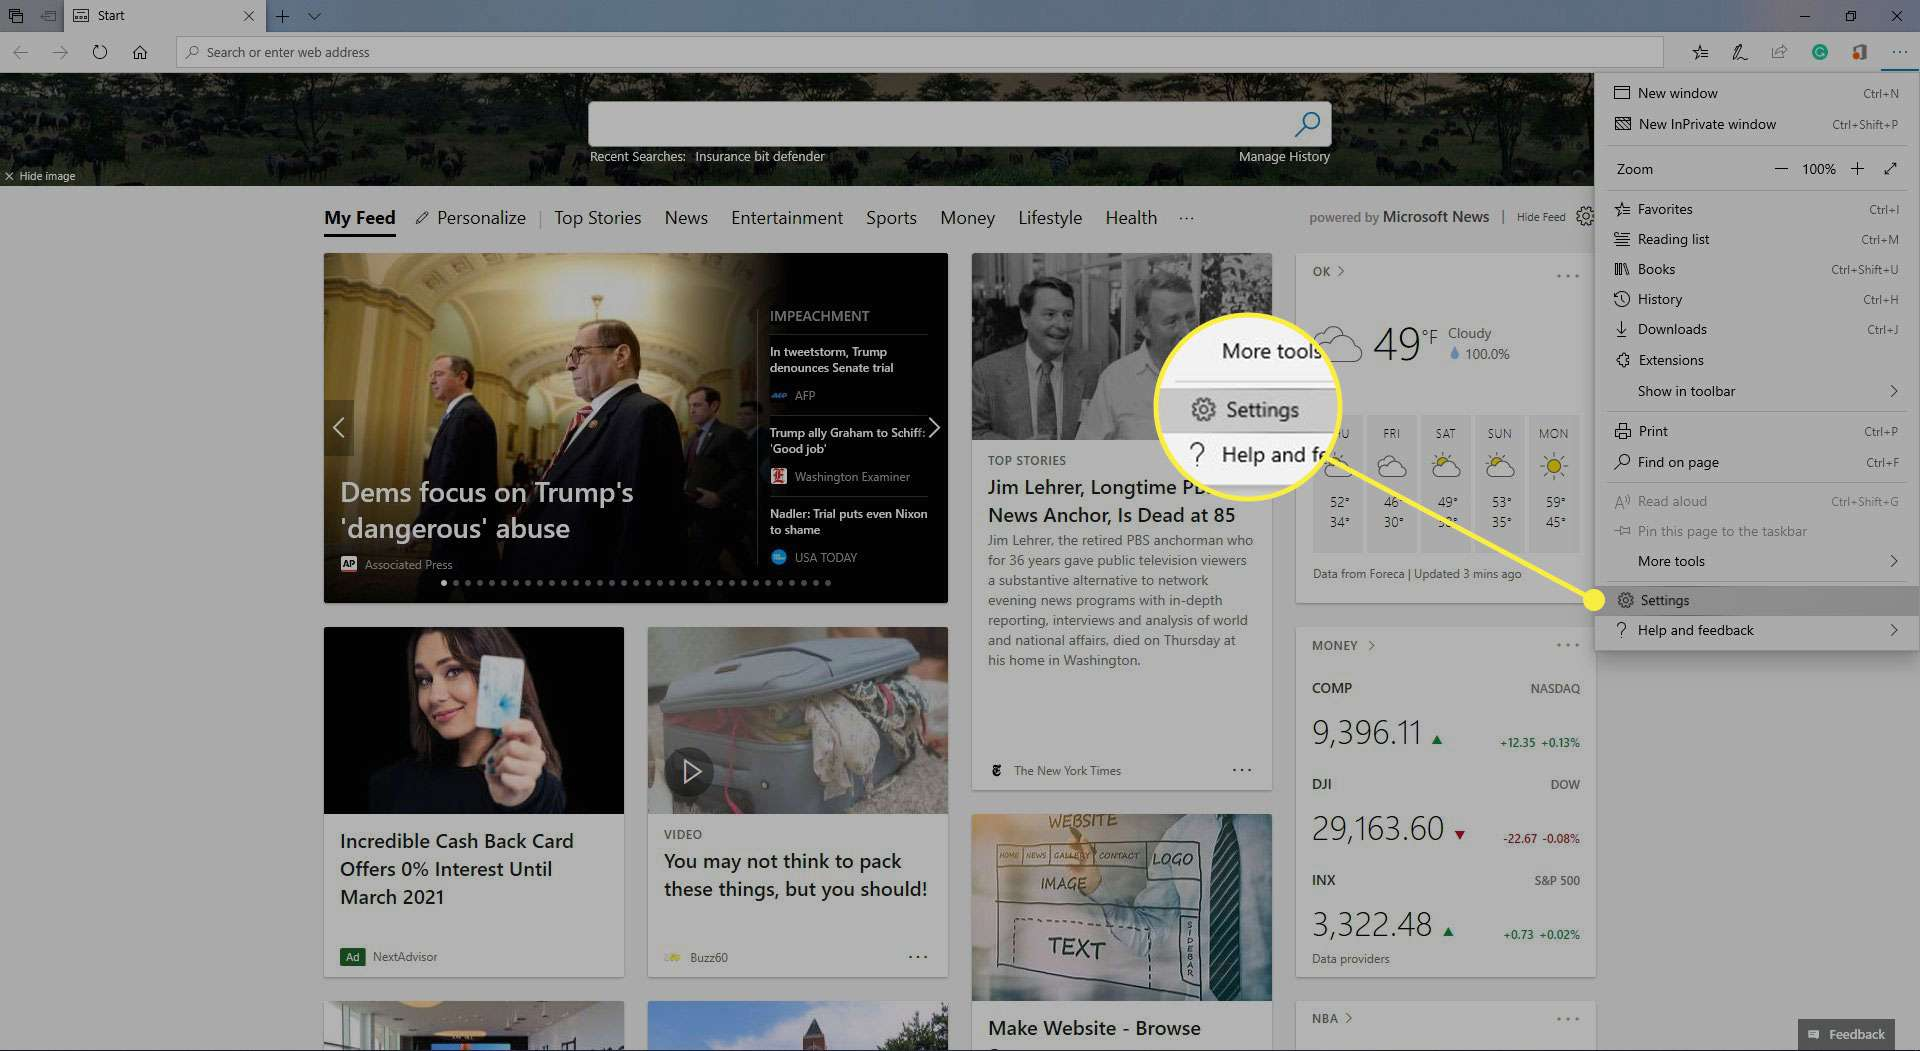 Microsoft Edge with the Settings option highlighted